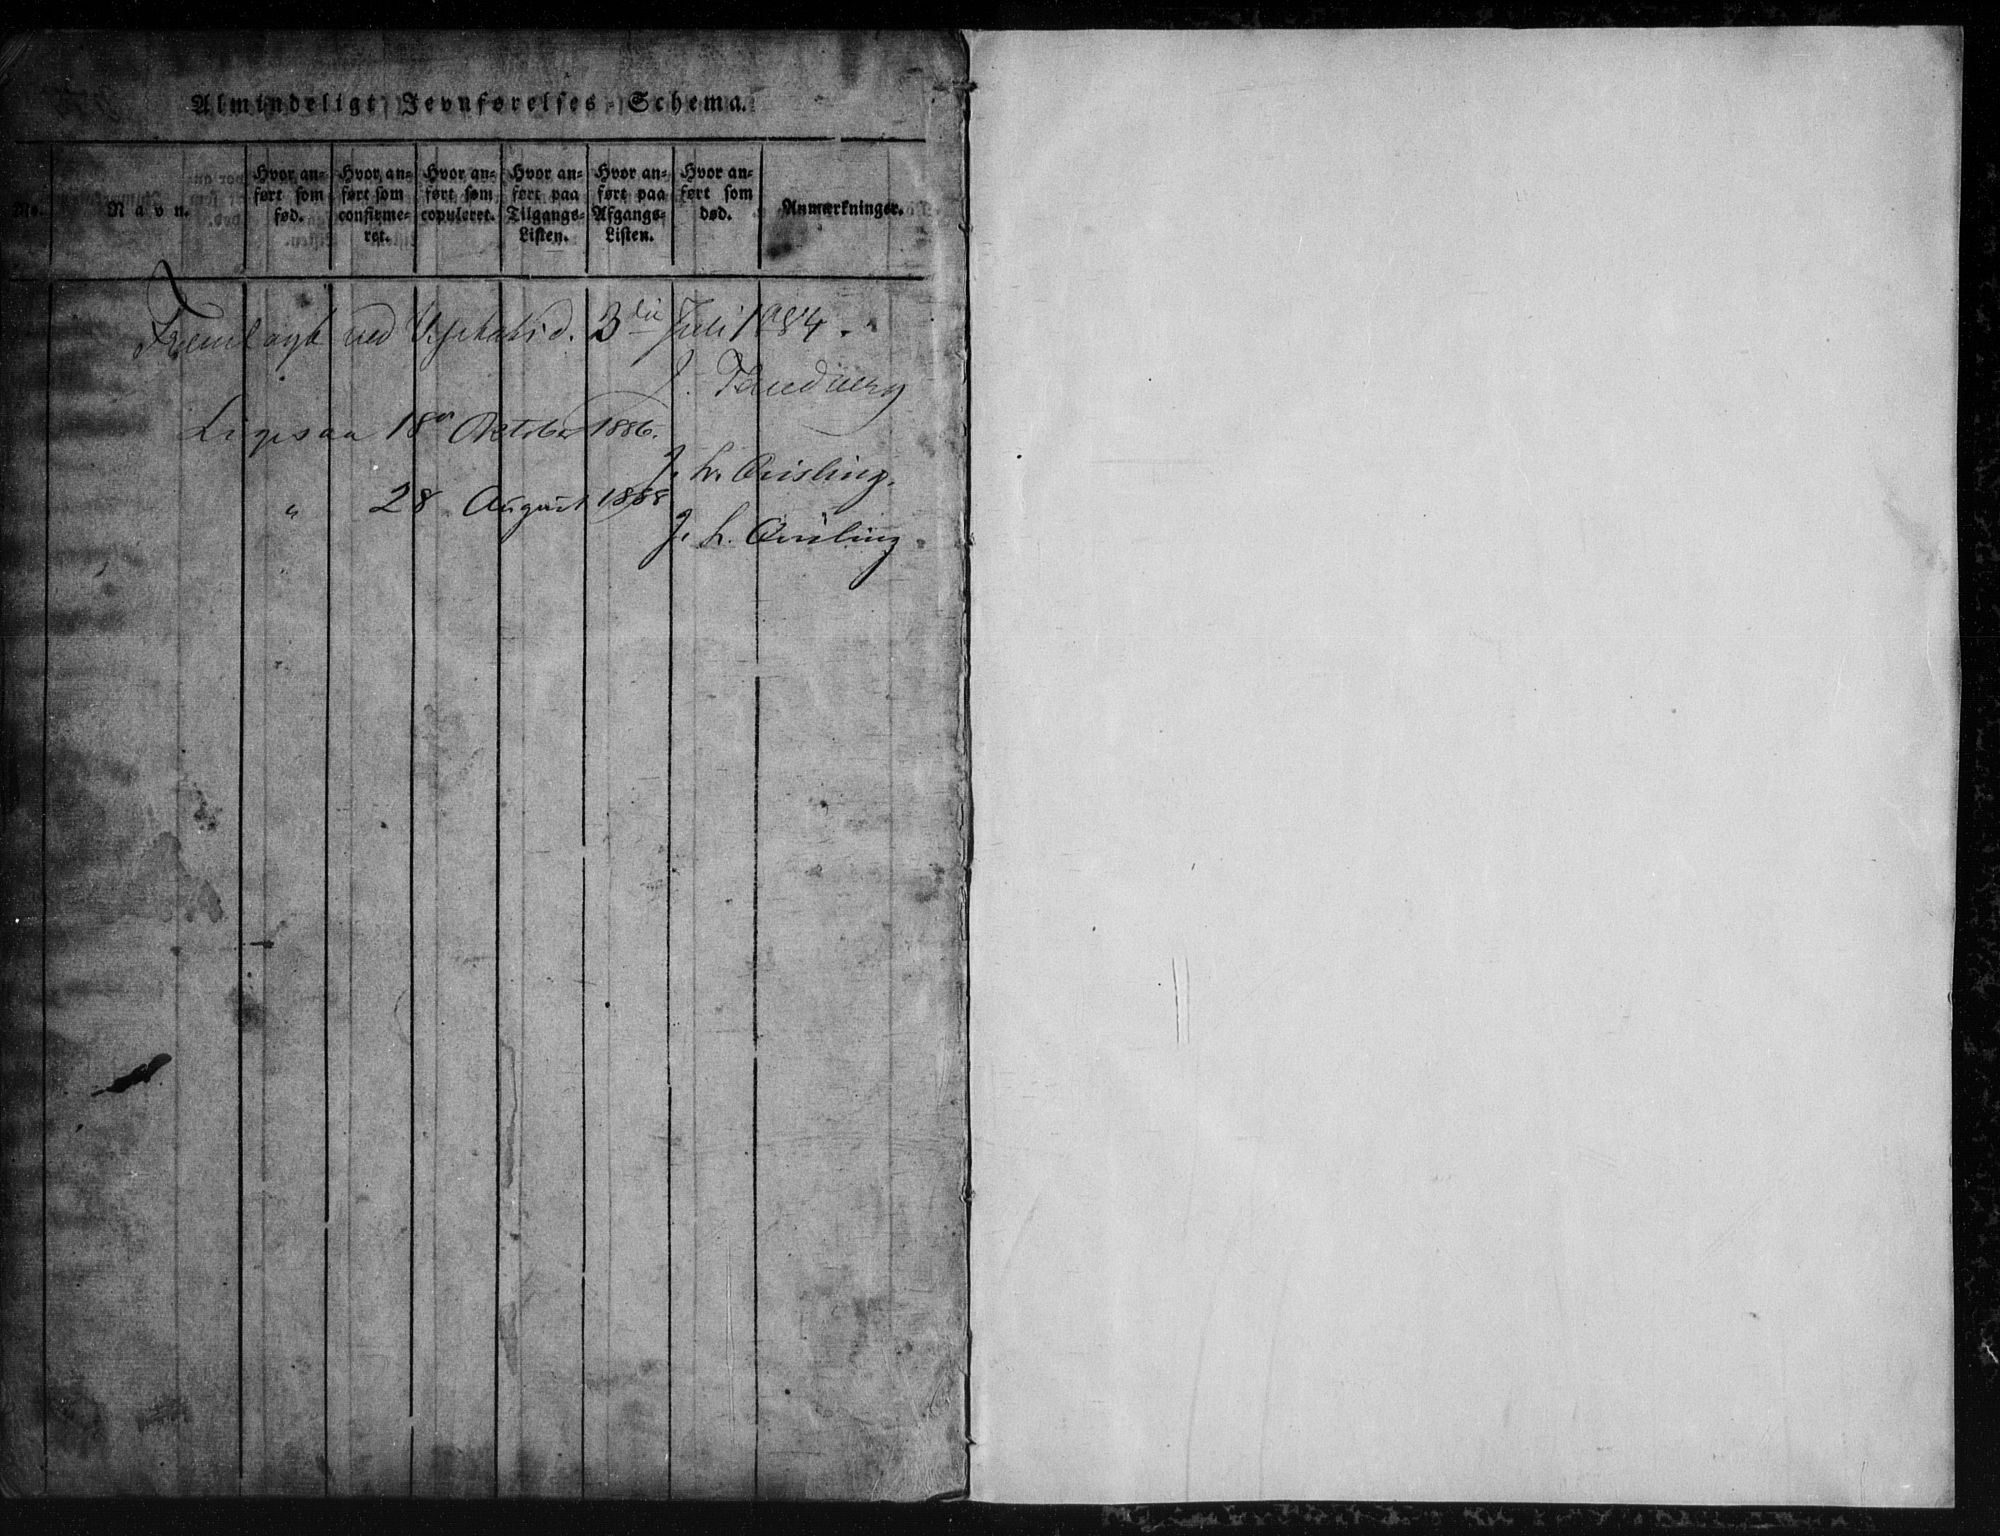 SAKO, Rauland kirkebøker, G/Gb/L0001: Parish register (copy) no. II 1, 1815-1886